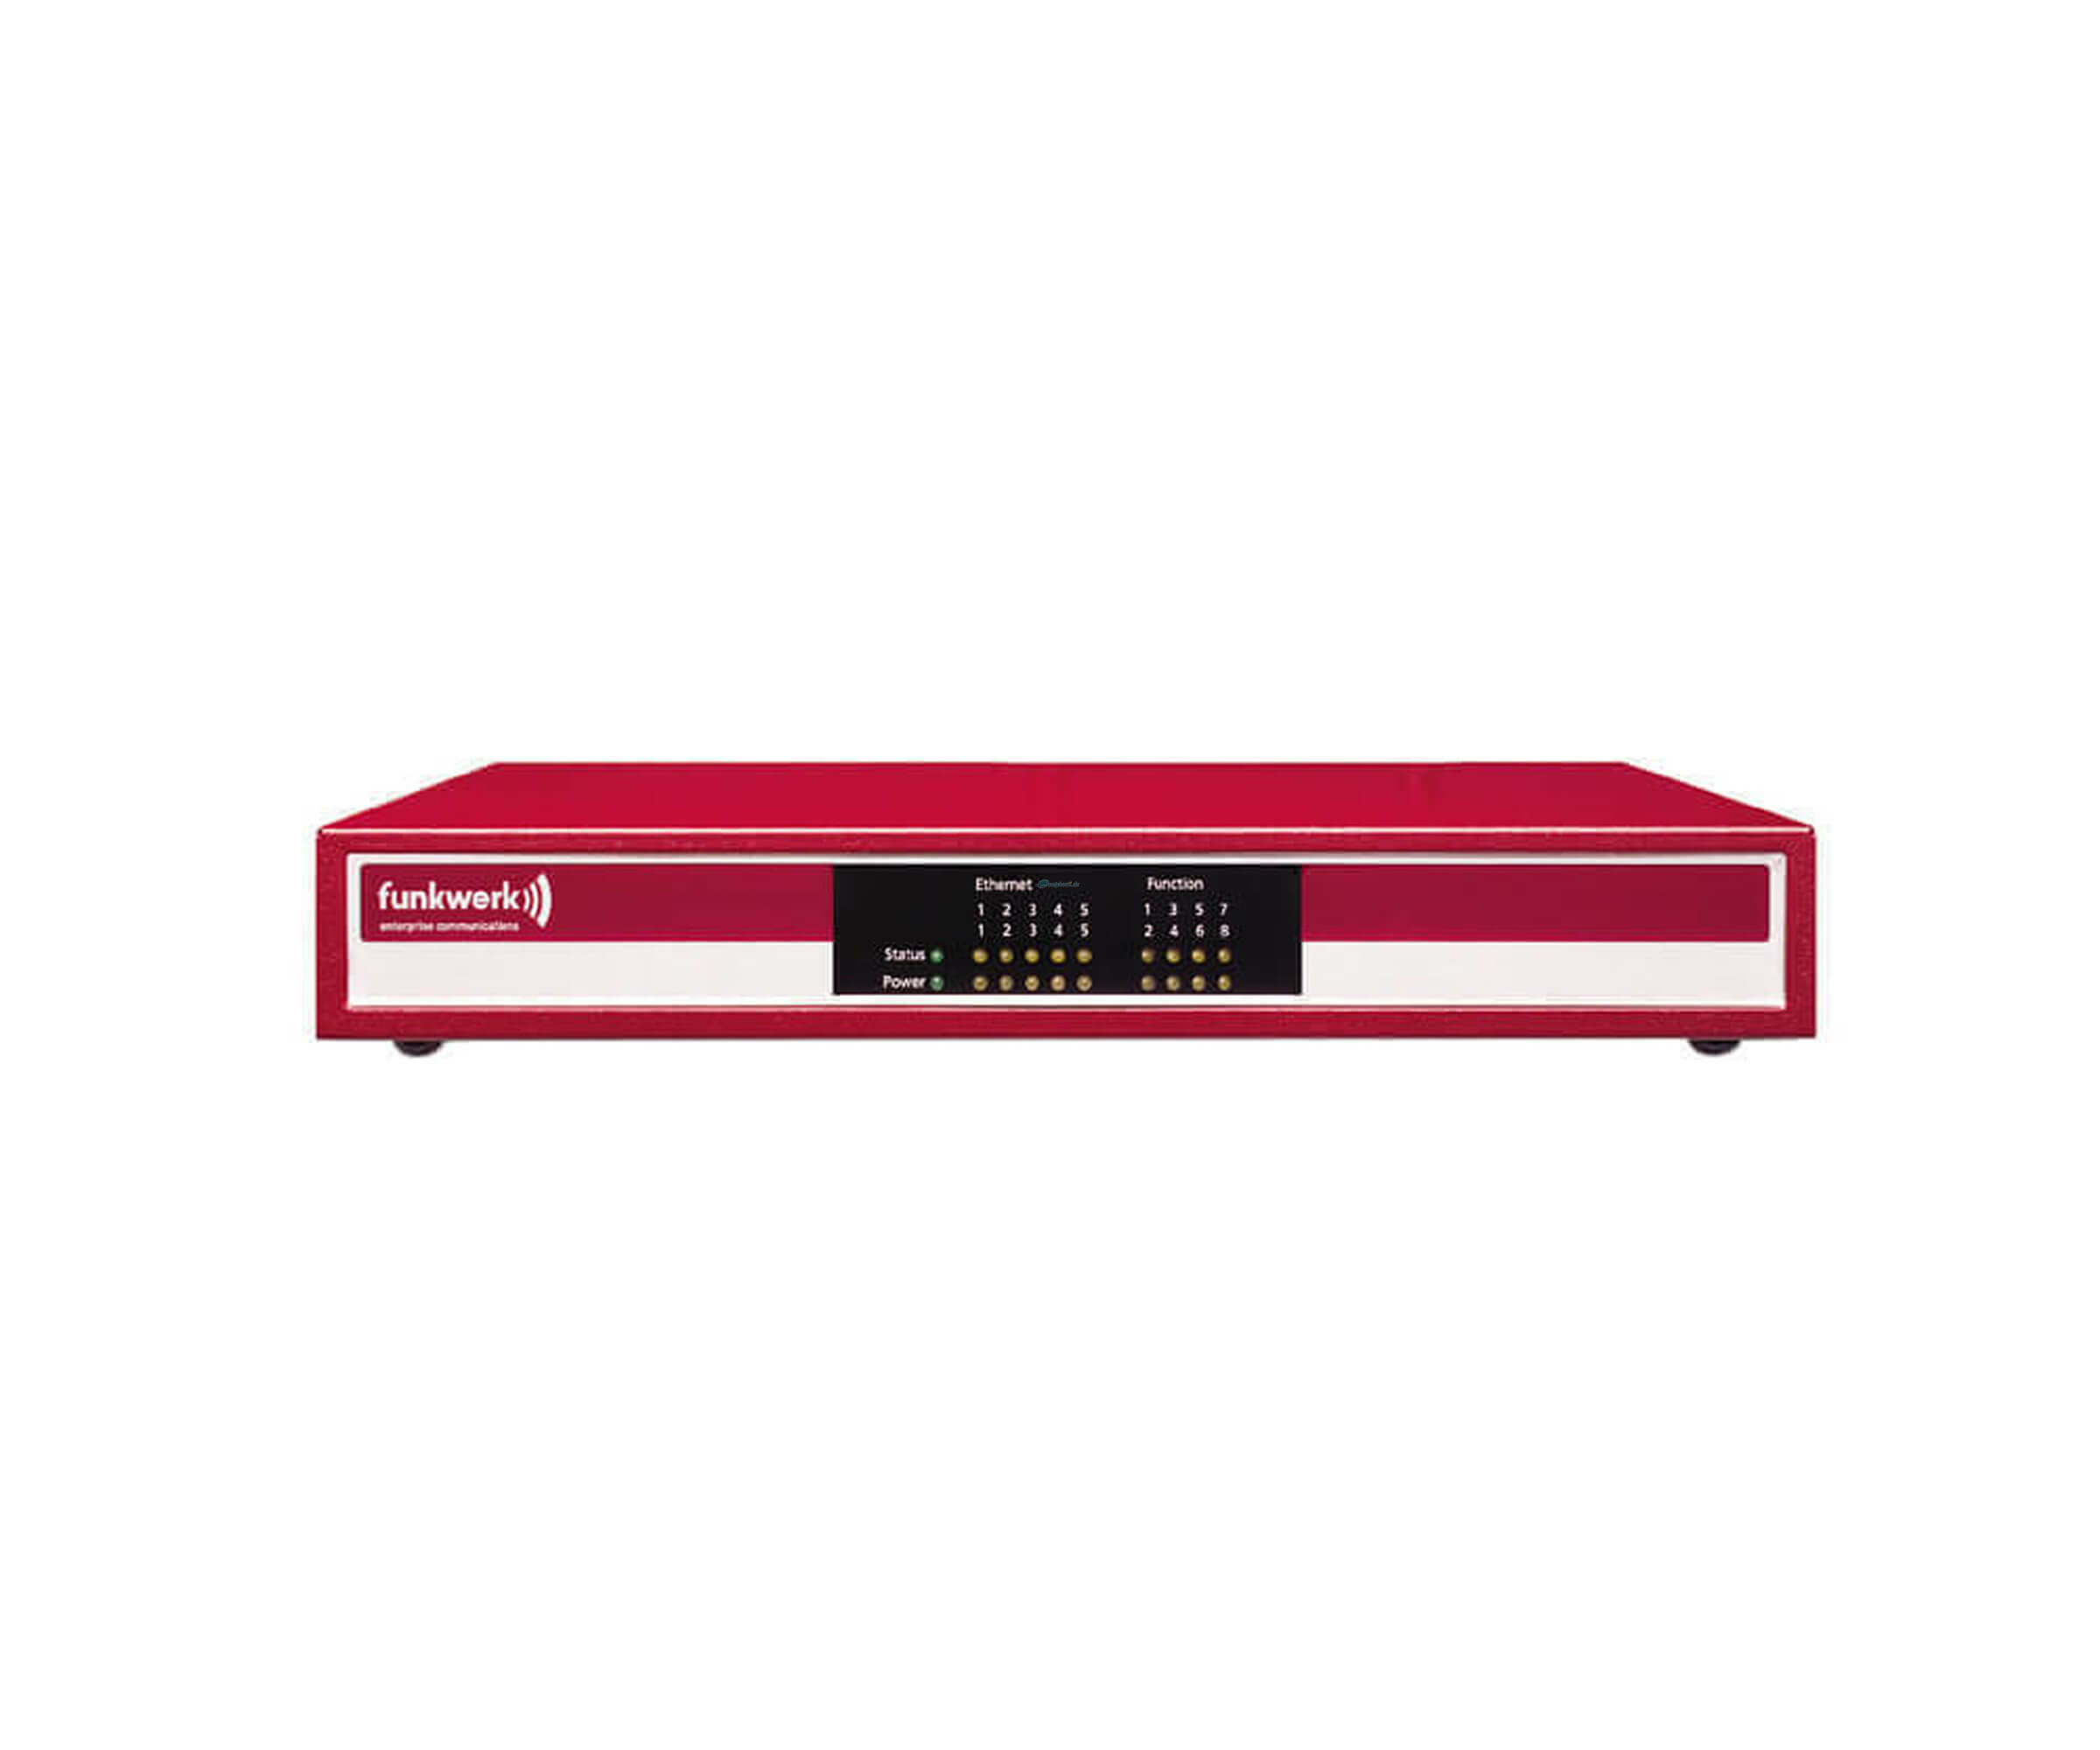 Bintec R3800 - Router + 5-Port-Switch - SHDSL - ISDN/DSL - EN, Fast EN